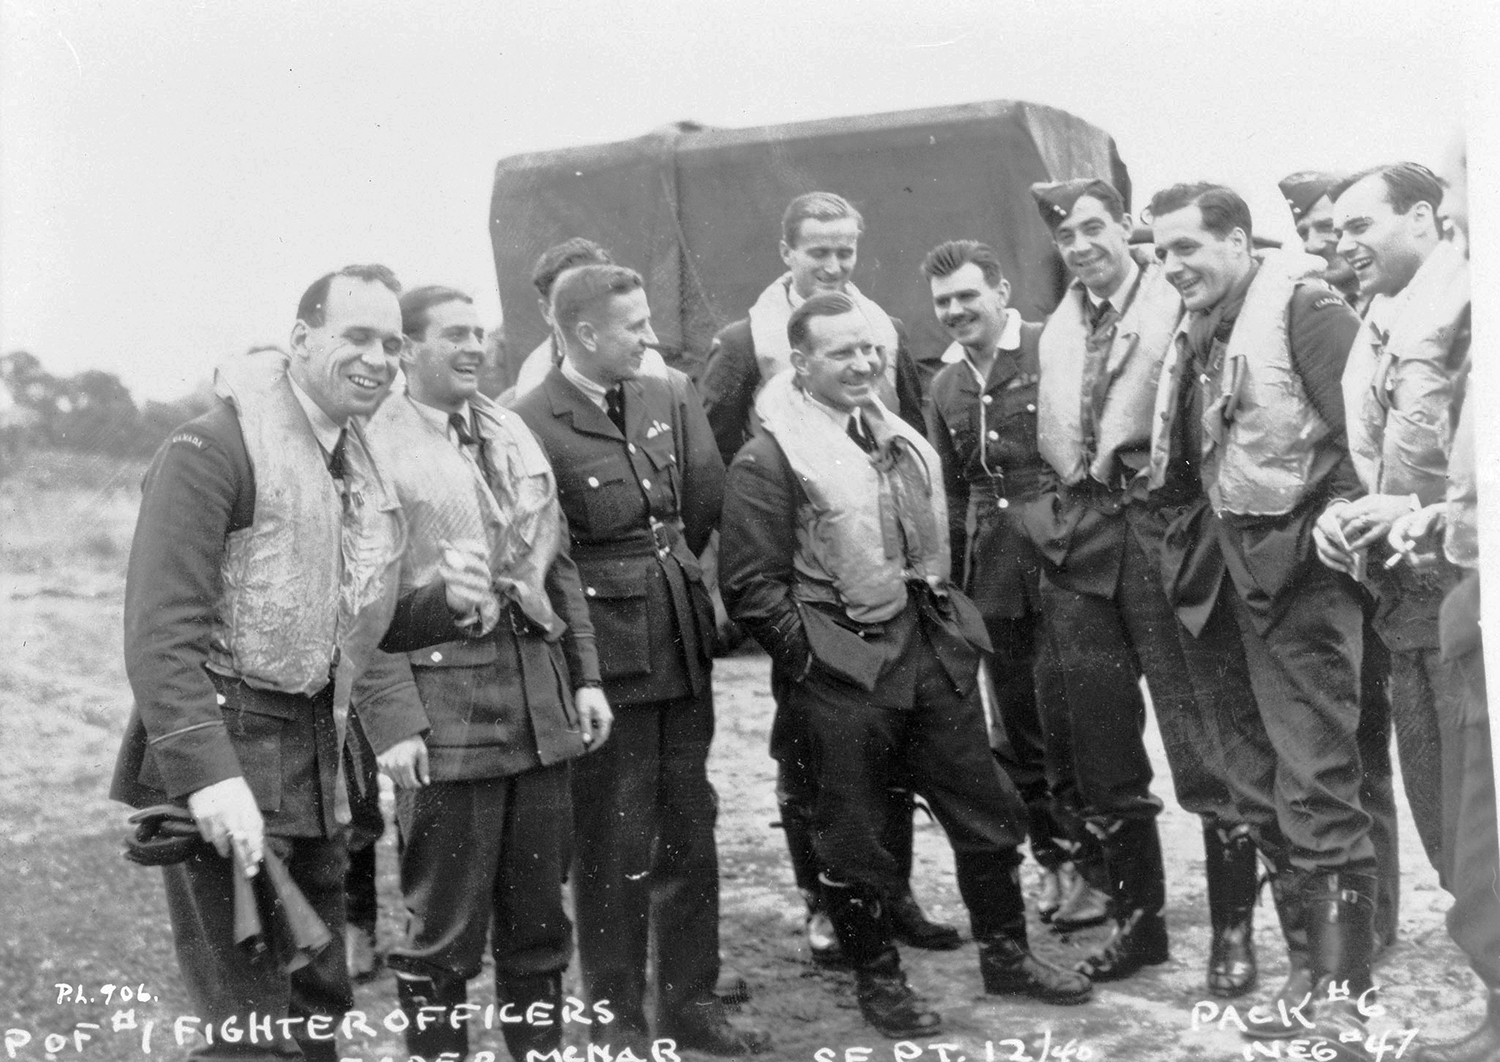 Squadron Leader Ernest McNab and some of his pilots pose for a photo and a laugh September 12, 1940, during the Battle of Britain: (left to right) Flying Officer William P. Sprenger, Flying Officer Otto John Peterson, Flight Lieutenant W.R. Pollock (adjudant), Flying Officer Paul Brooks Pitcher, Squadron Leader McNab, Flying Officer Peter William Lochnan, Flight Lieutenant Edwin Michael Reyno, Flying Officer Eric Walter Beardmore, Flying Officer S.T. Blaiklock (intelligence officer) and Flying Officer Robert William Norris. PHOTO: Courtesy Library and Archives of Canada